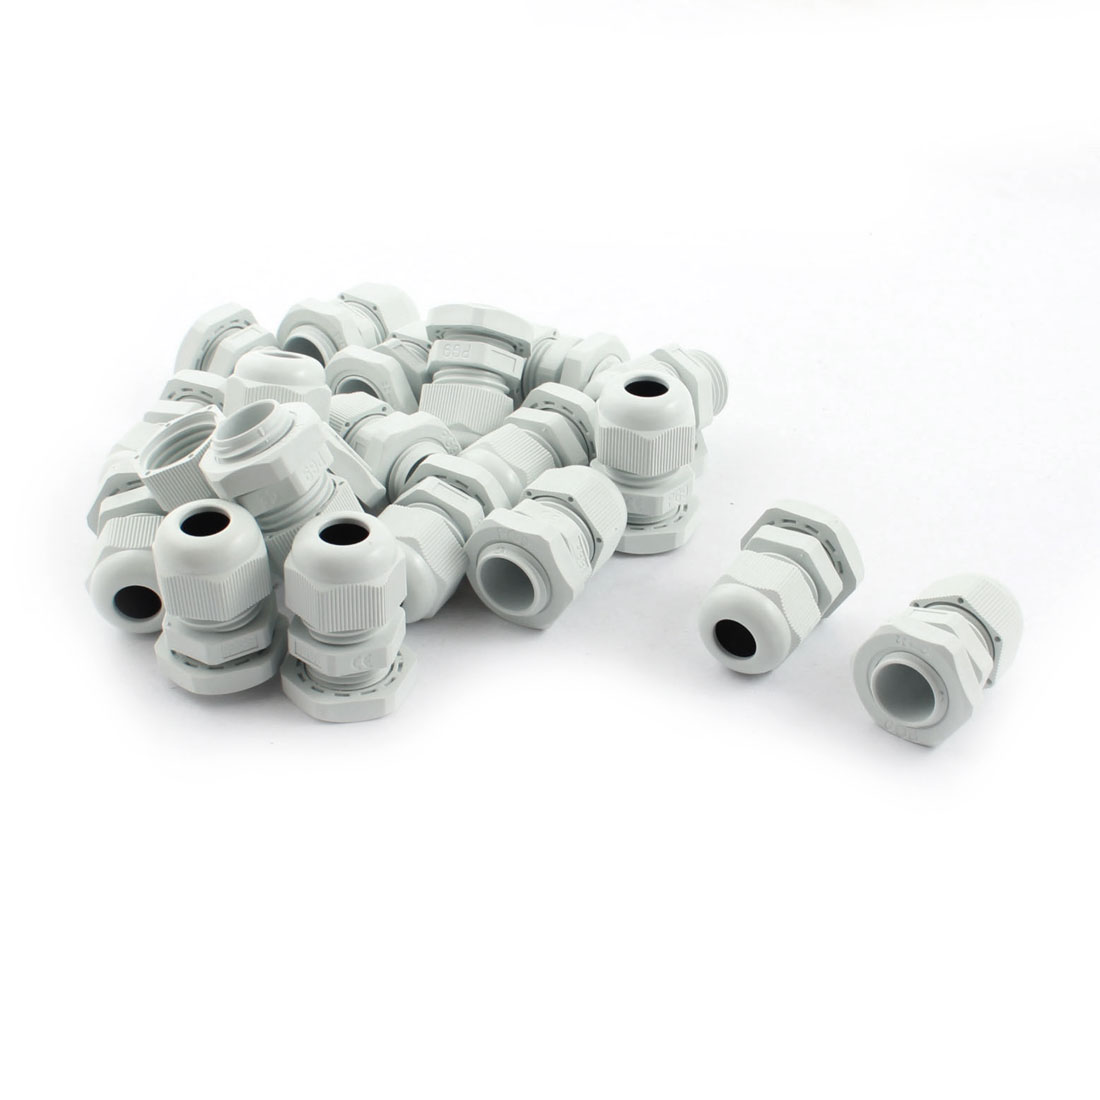 Nylon Waterproof Cord Grip 4-8mm Dia Cable Glands Connector PG9 20Pcs